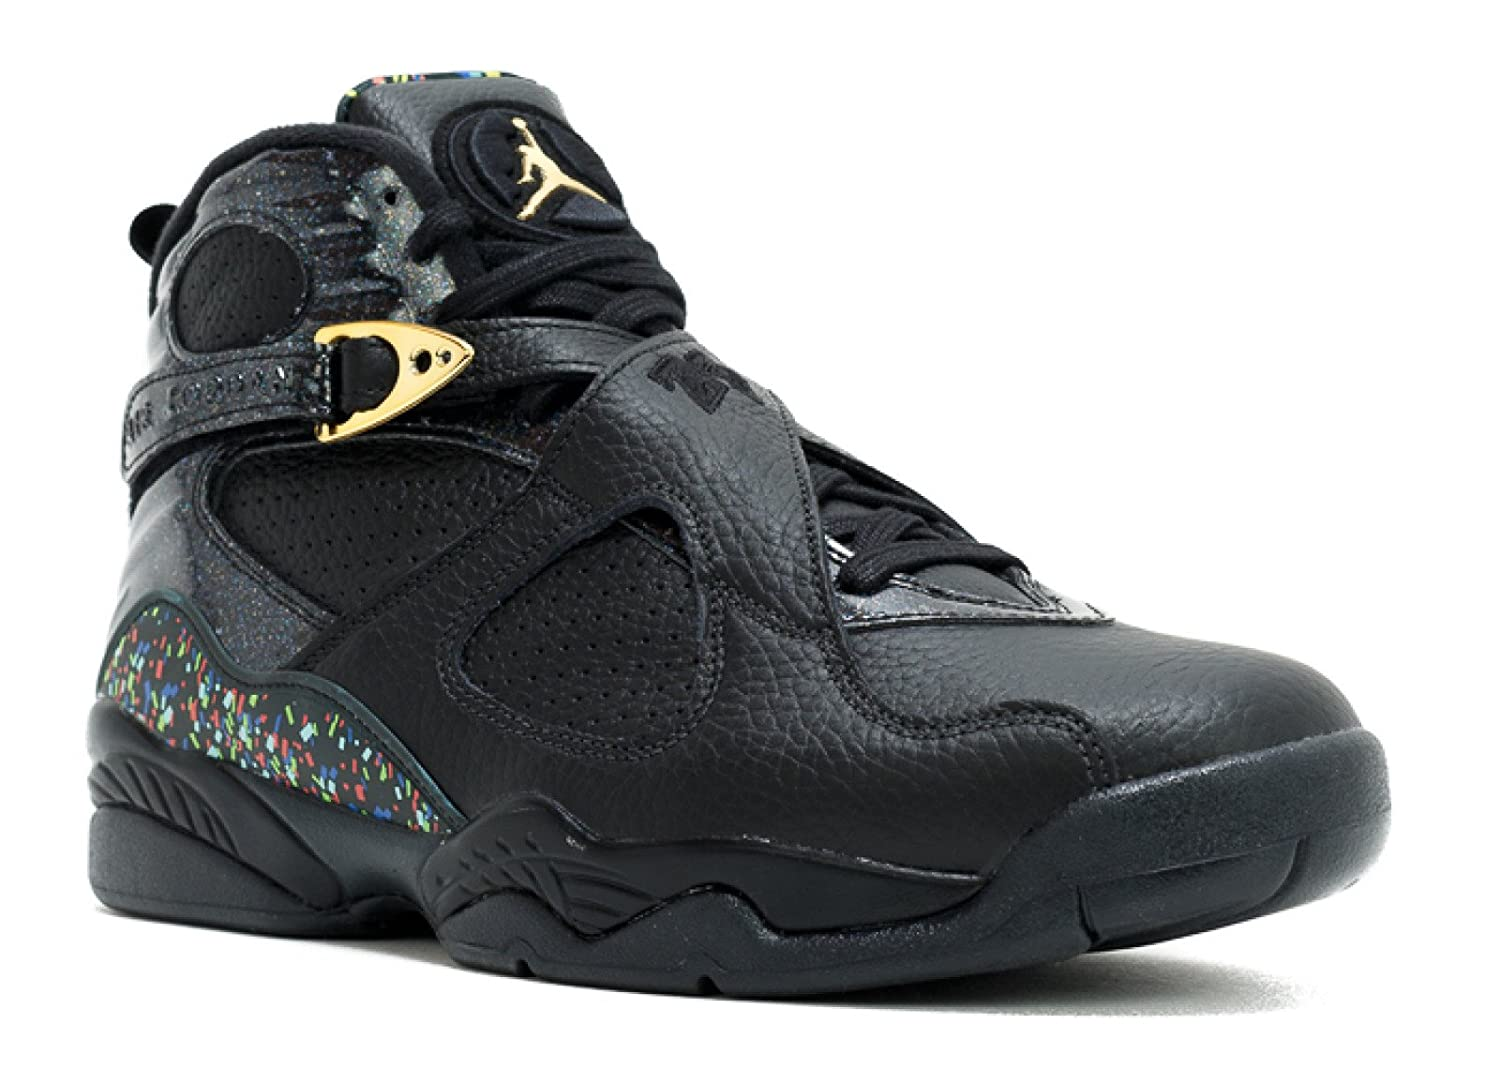 AIR JORDAN - エアジョーダン - AIR JORDAN 8 RETRO C&C 'CONFETTI' - 832821-004 (メンズ) B01ILDEBLQ  14